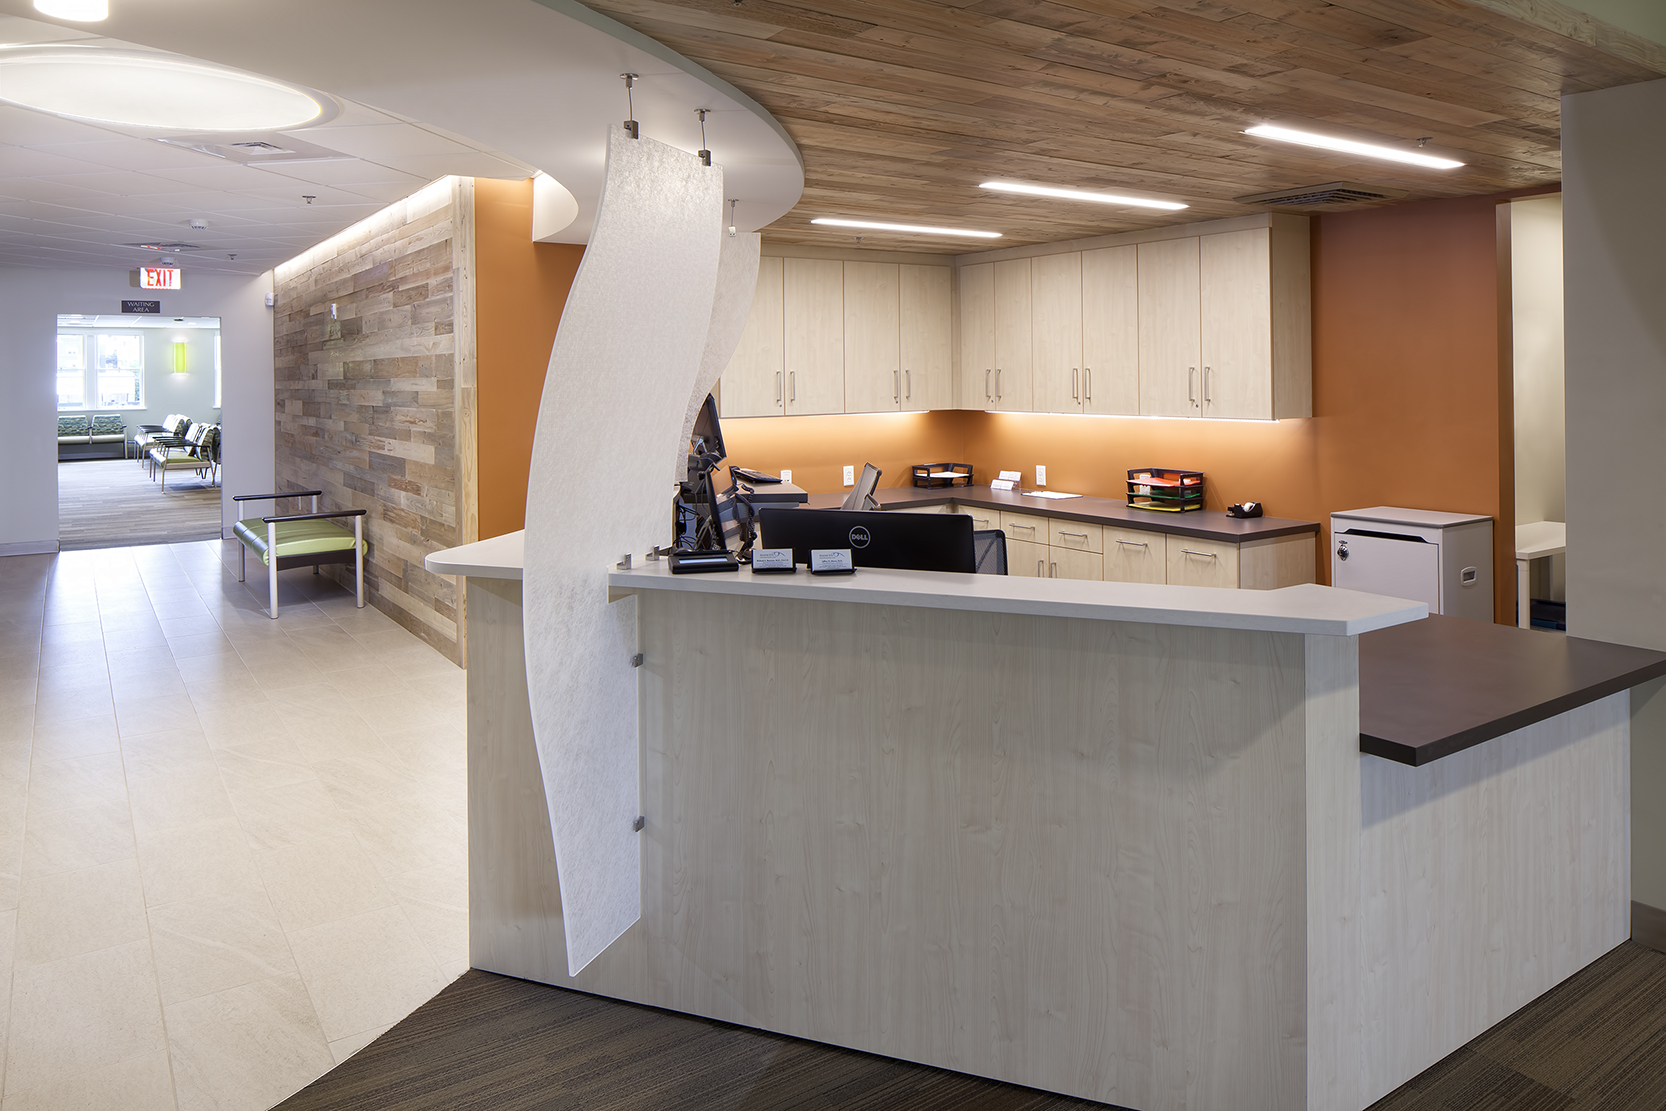 Warm finishes for the check in desk for Lasik and exam patients include reclaimed Maine timber on walls and ceilings and a quartzite visual tile.